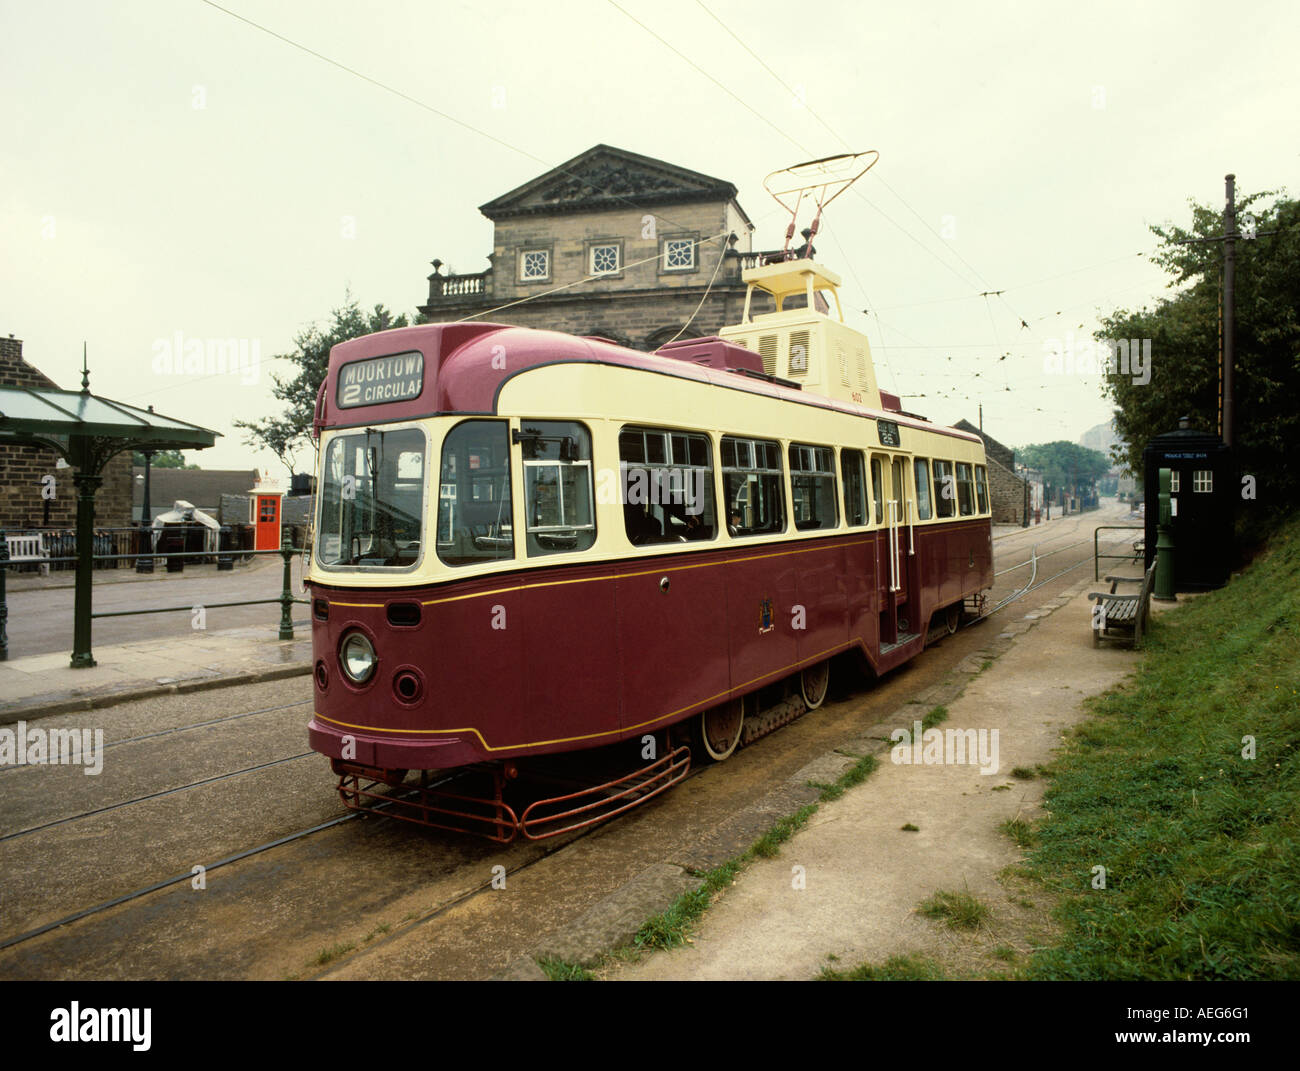 Derbyshire Crich Transport Tramways Museum tram with police call box and K1 phone box - Stock Image